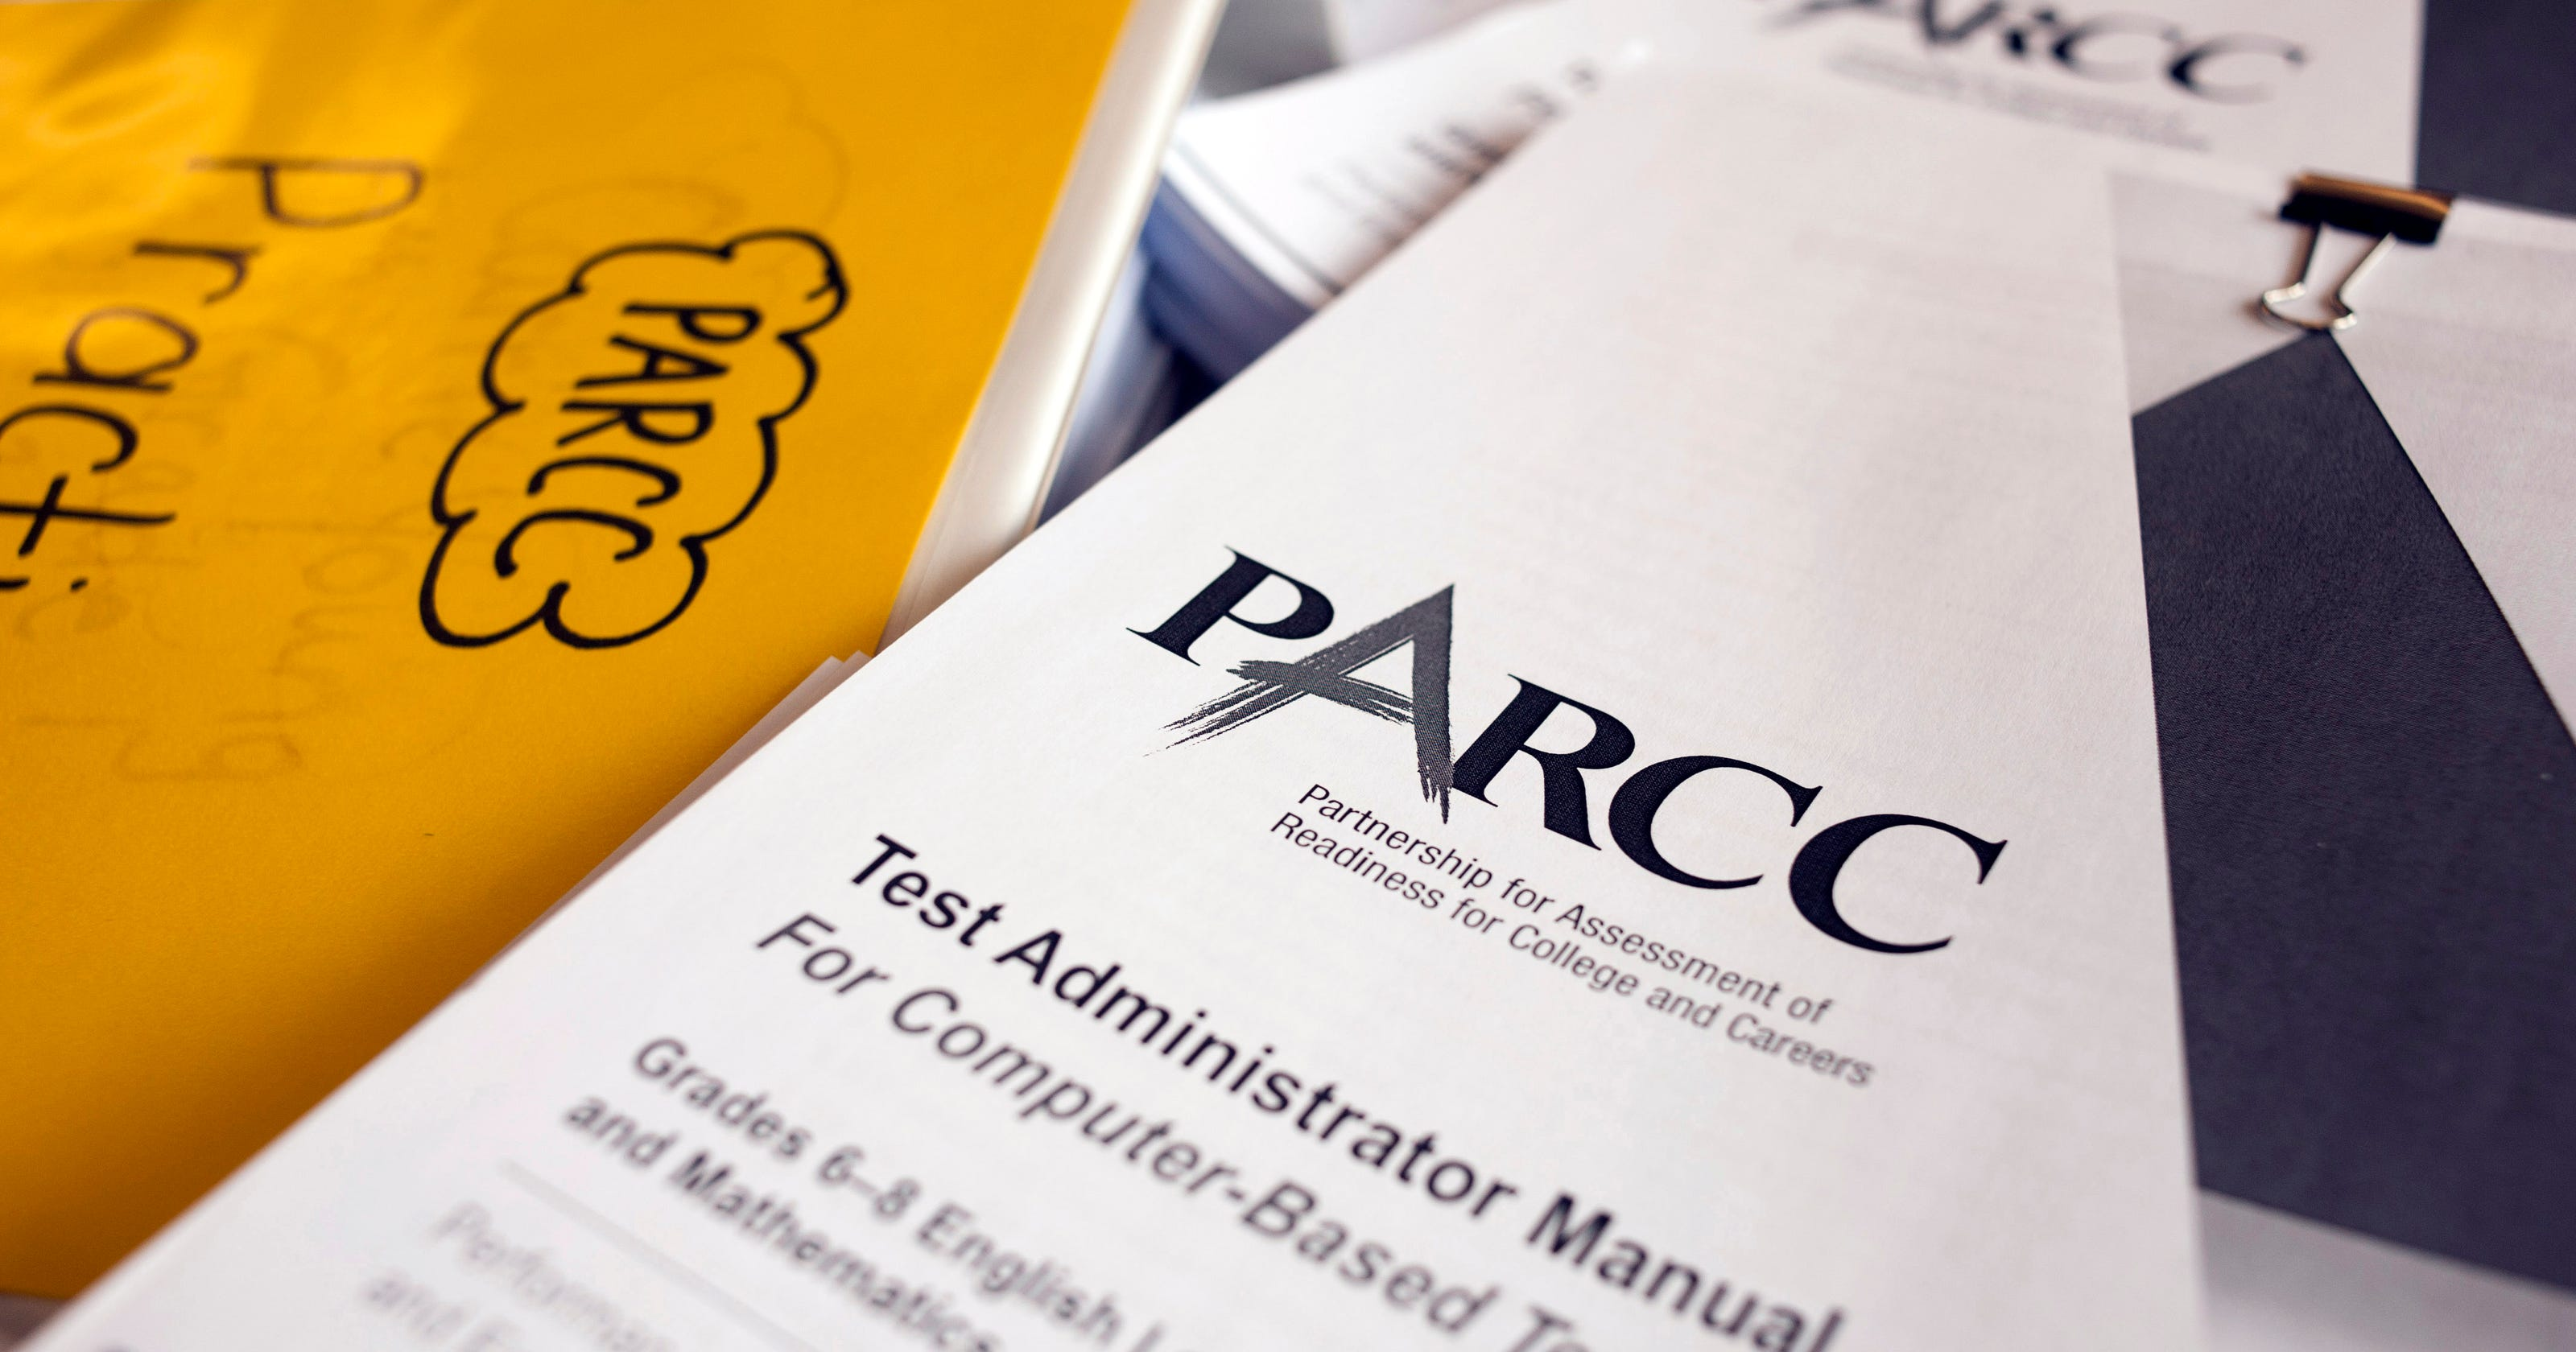 GONOS: PARCC fails the smell test